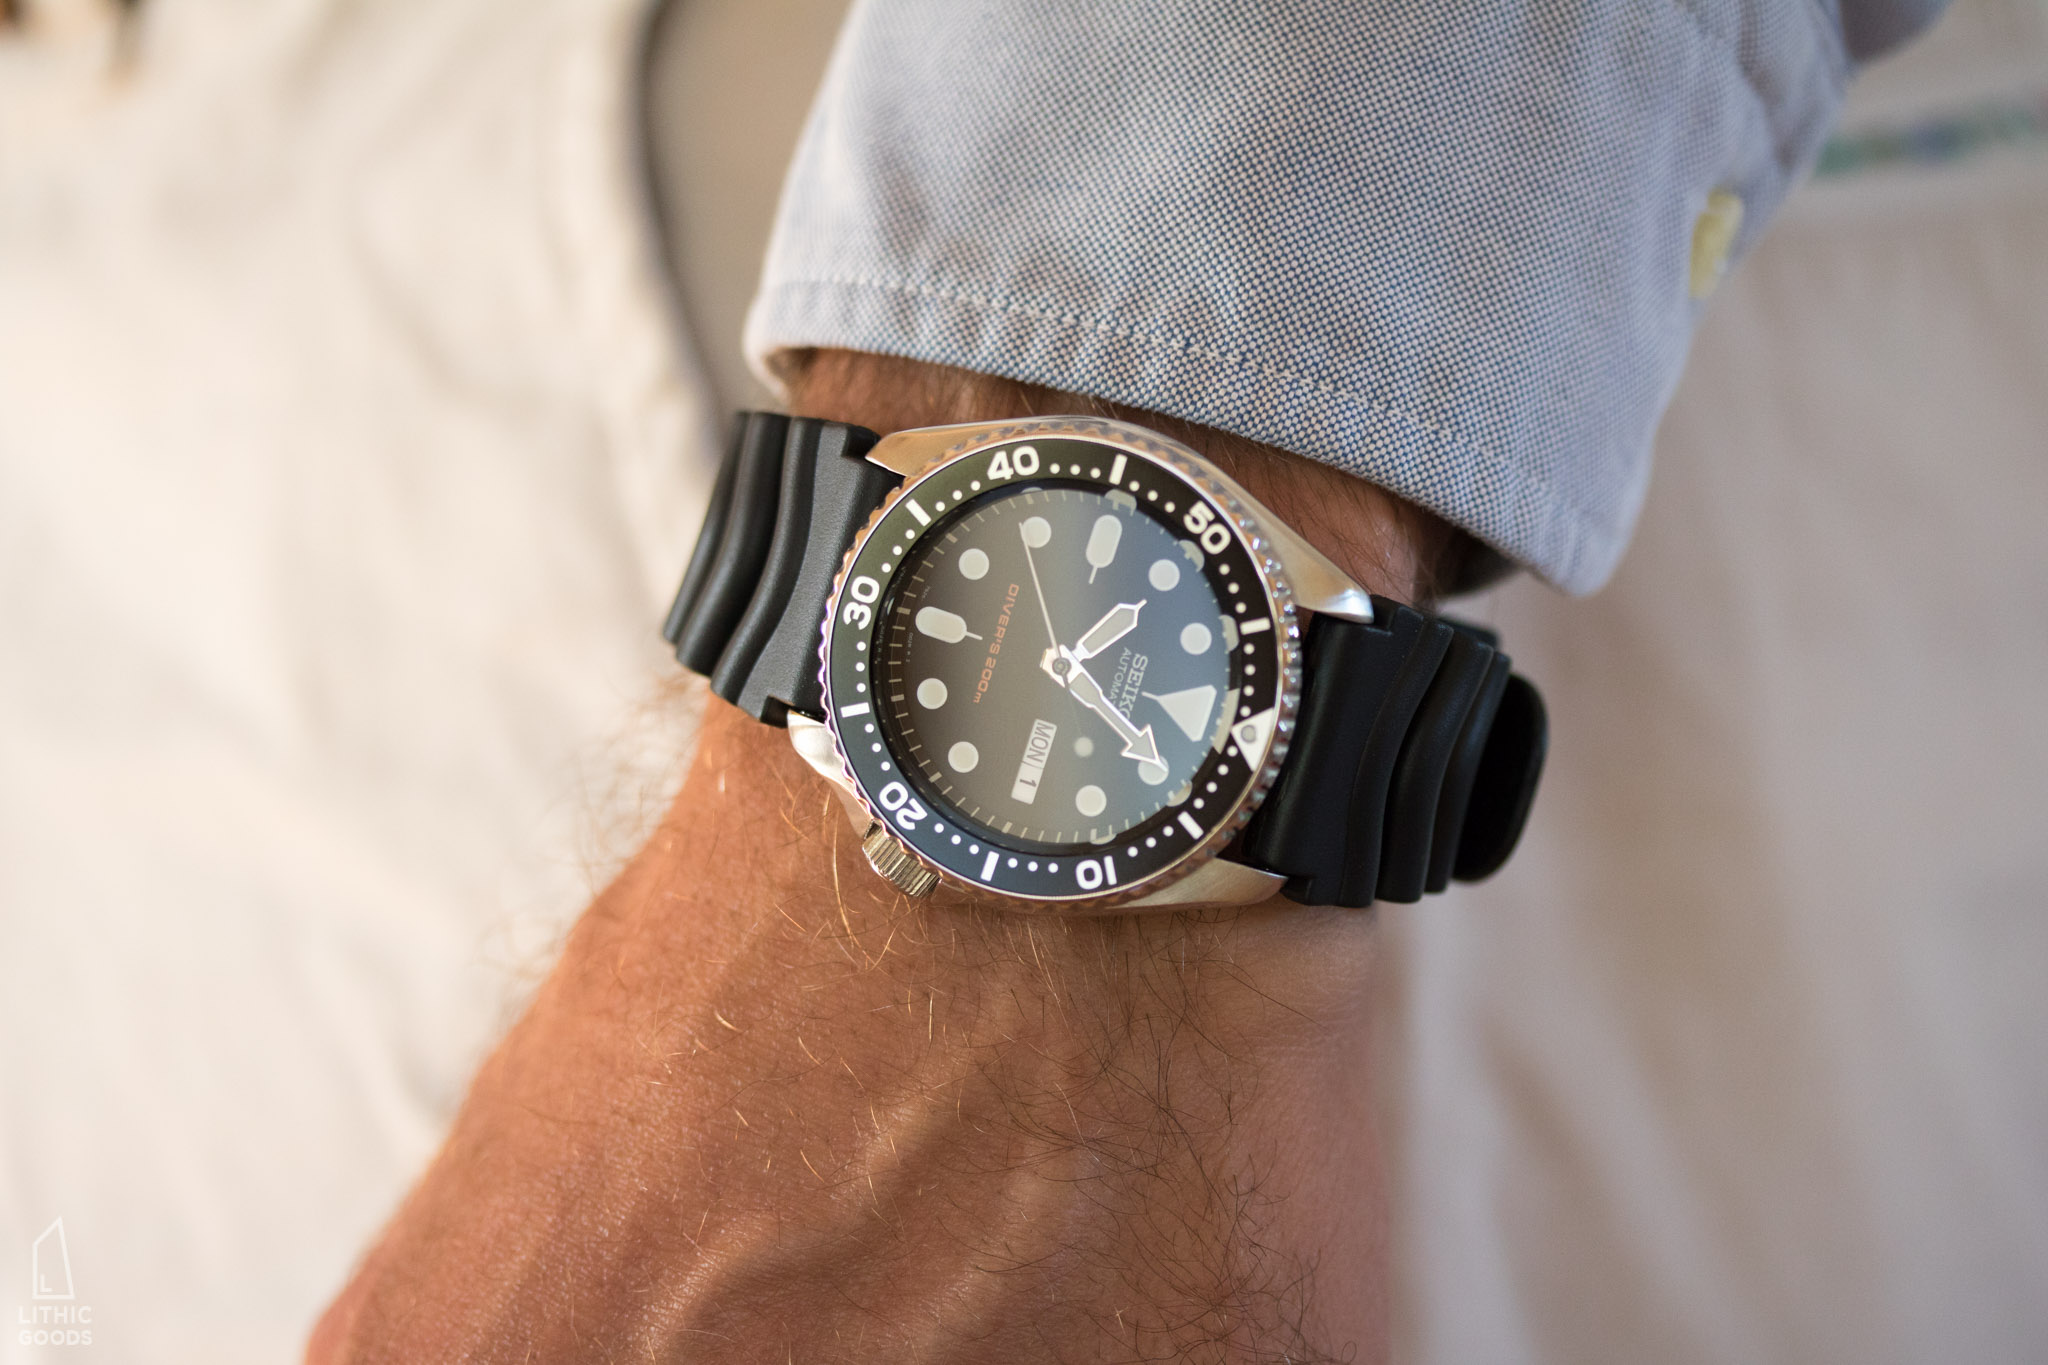 ¿Qué SEIKO llevas puesto hoy? Seiko-SKX007-original-rubber-divers-band-on-wrist-by-lithic-goods-10